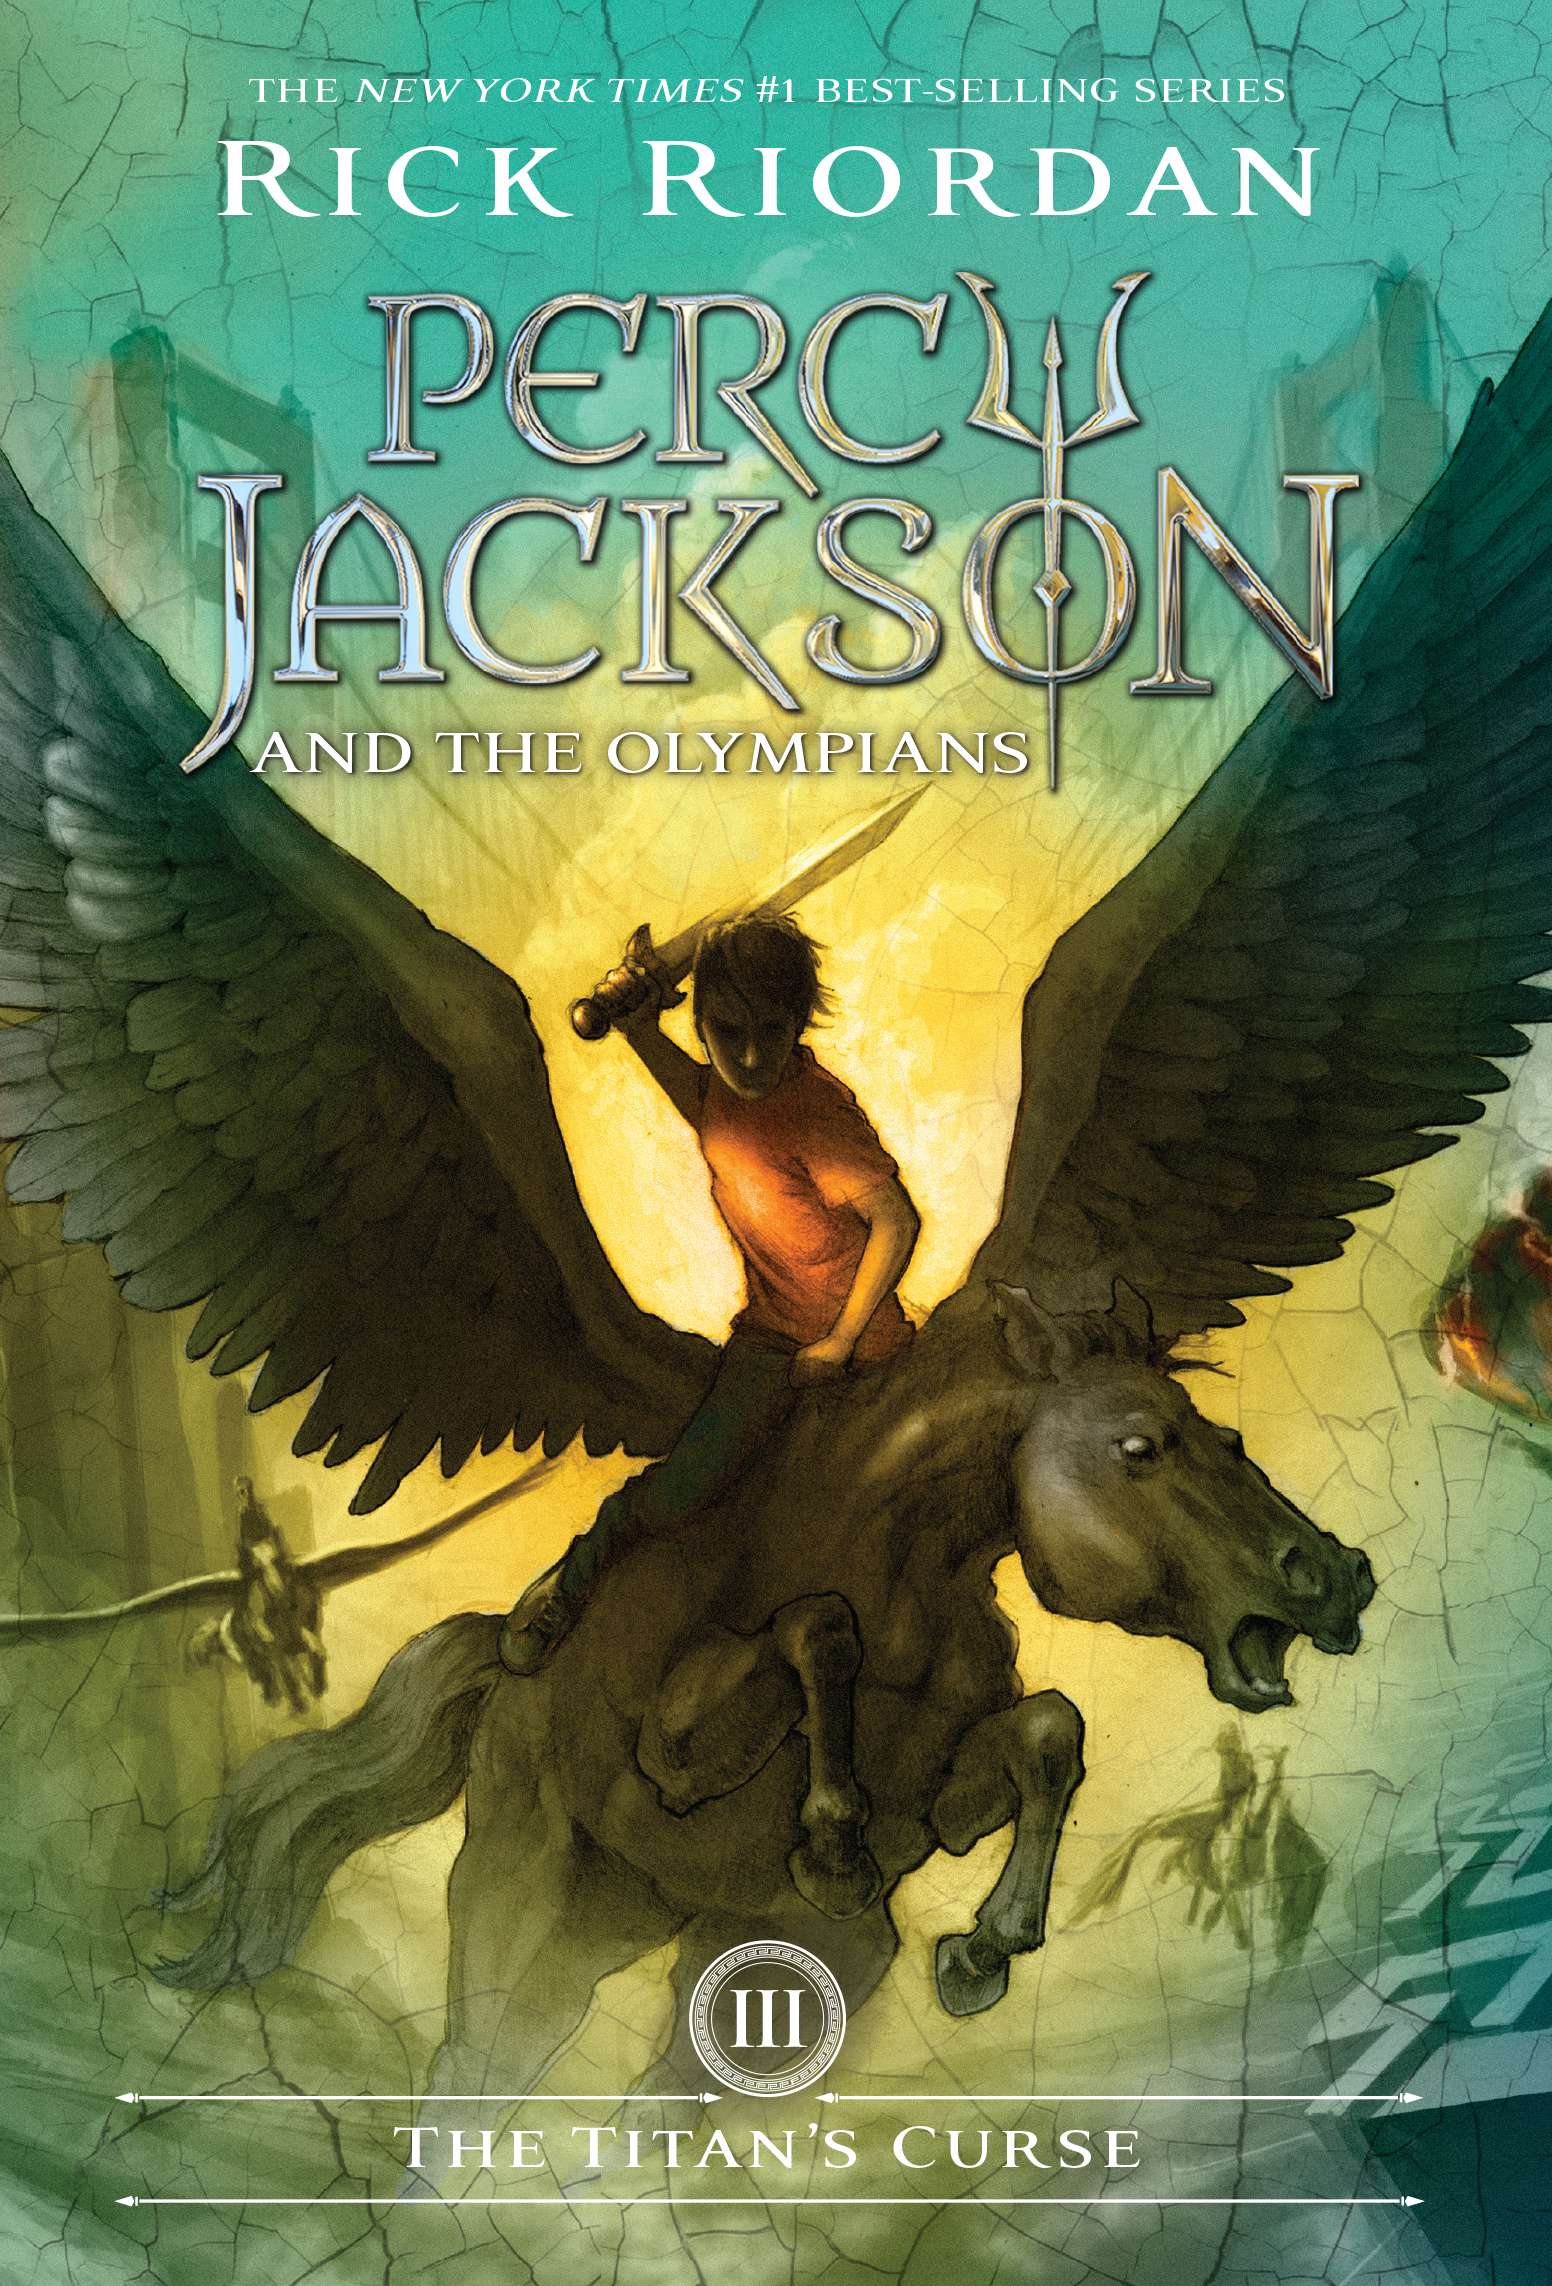 Percy Jackson and the Olympians: The Titan's Curse (Cover)